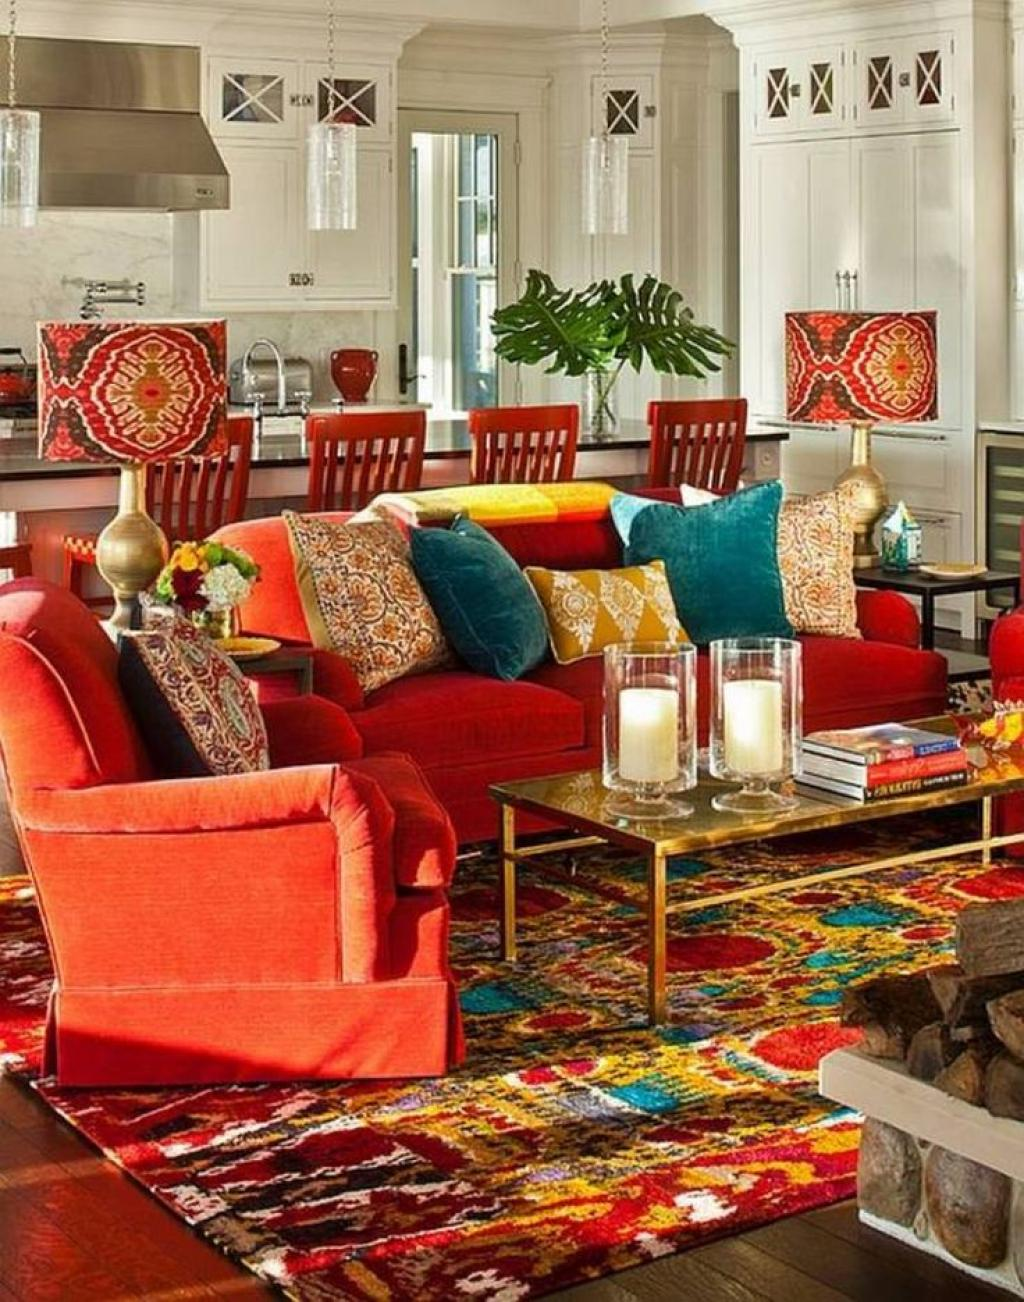 31 Best Bohemian Interior Design Ideas